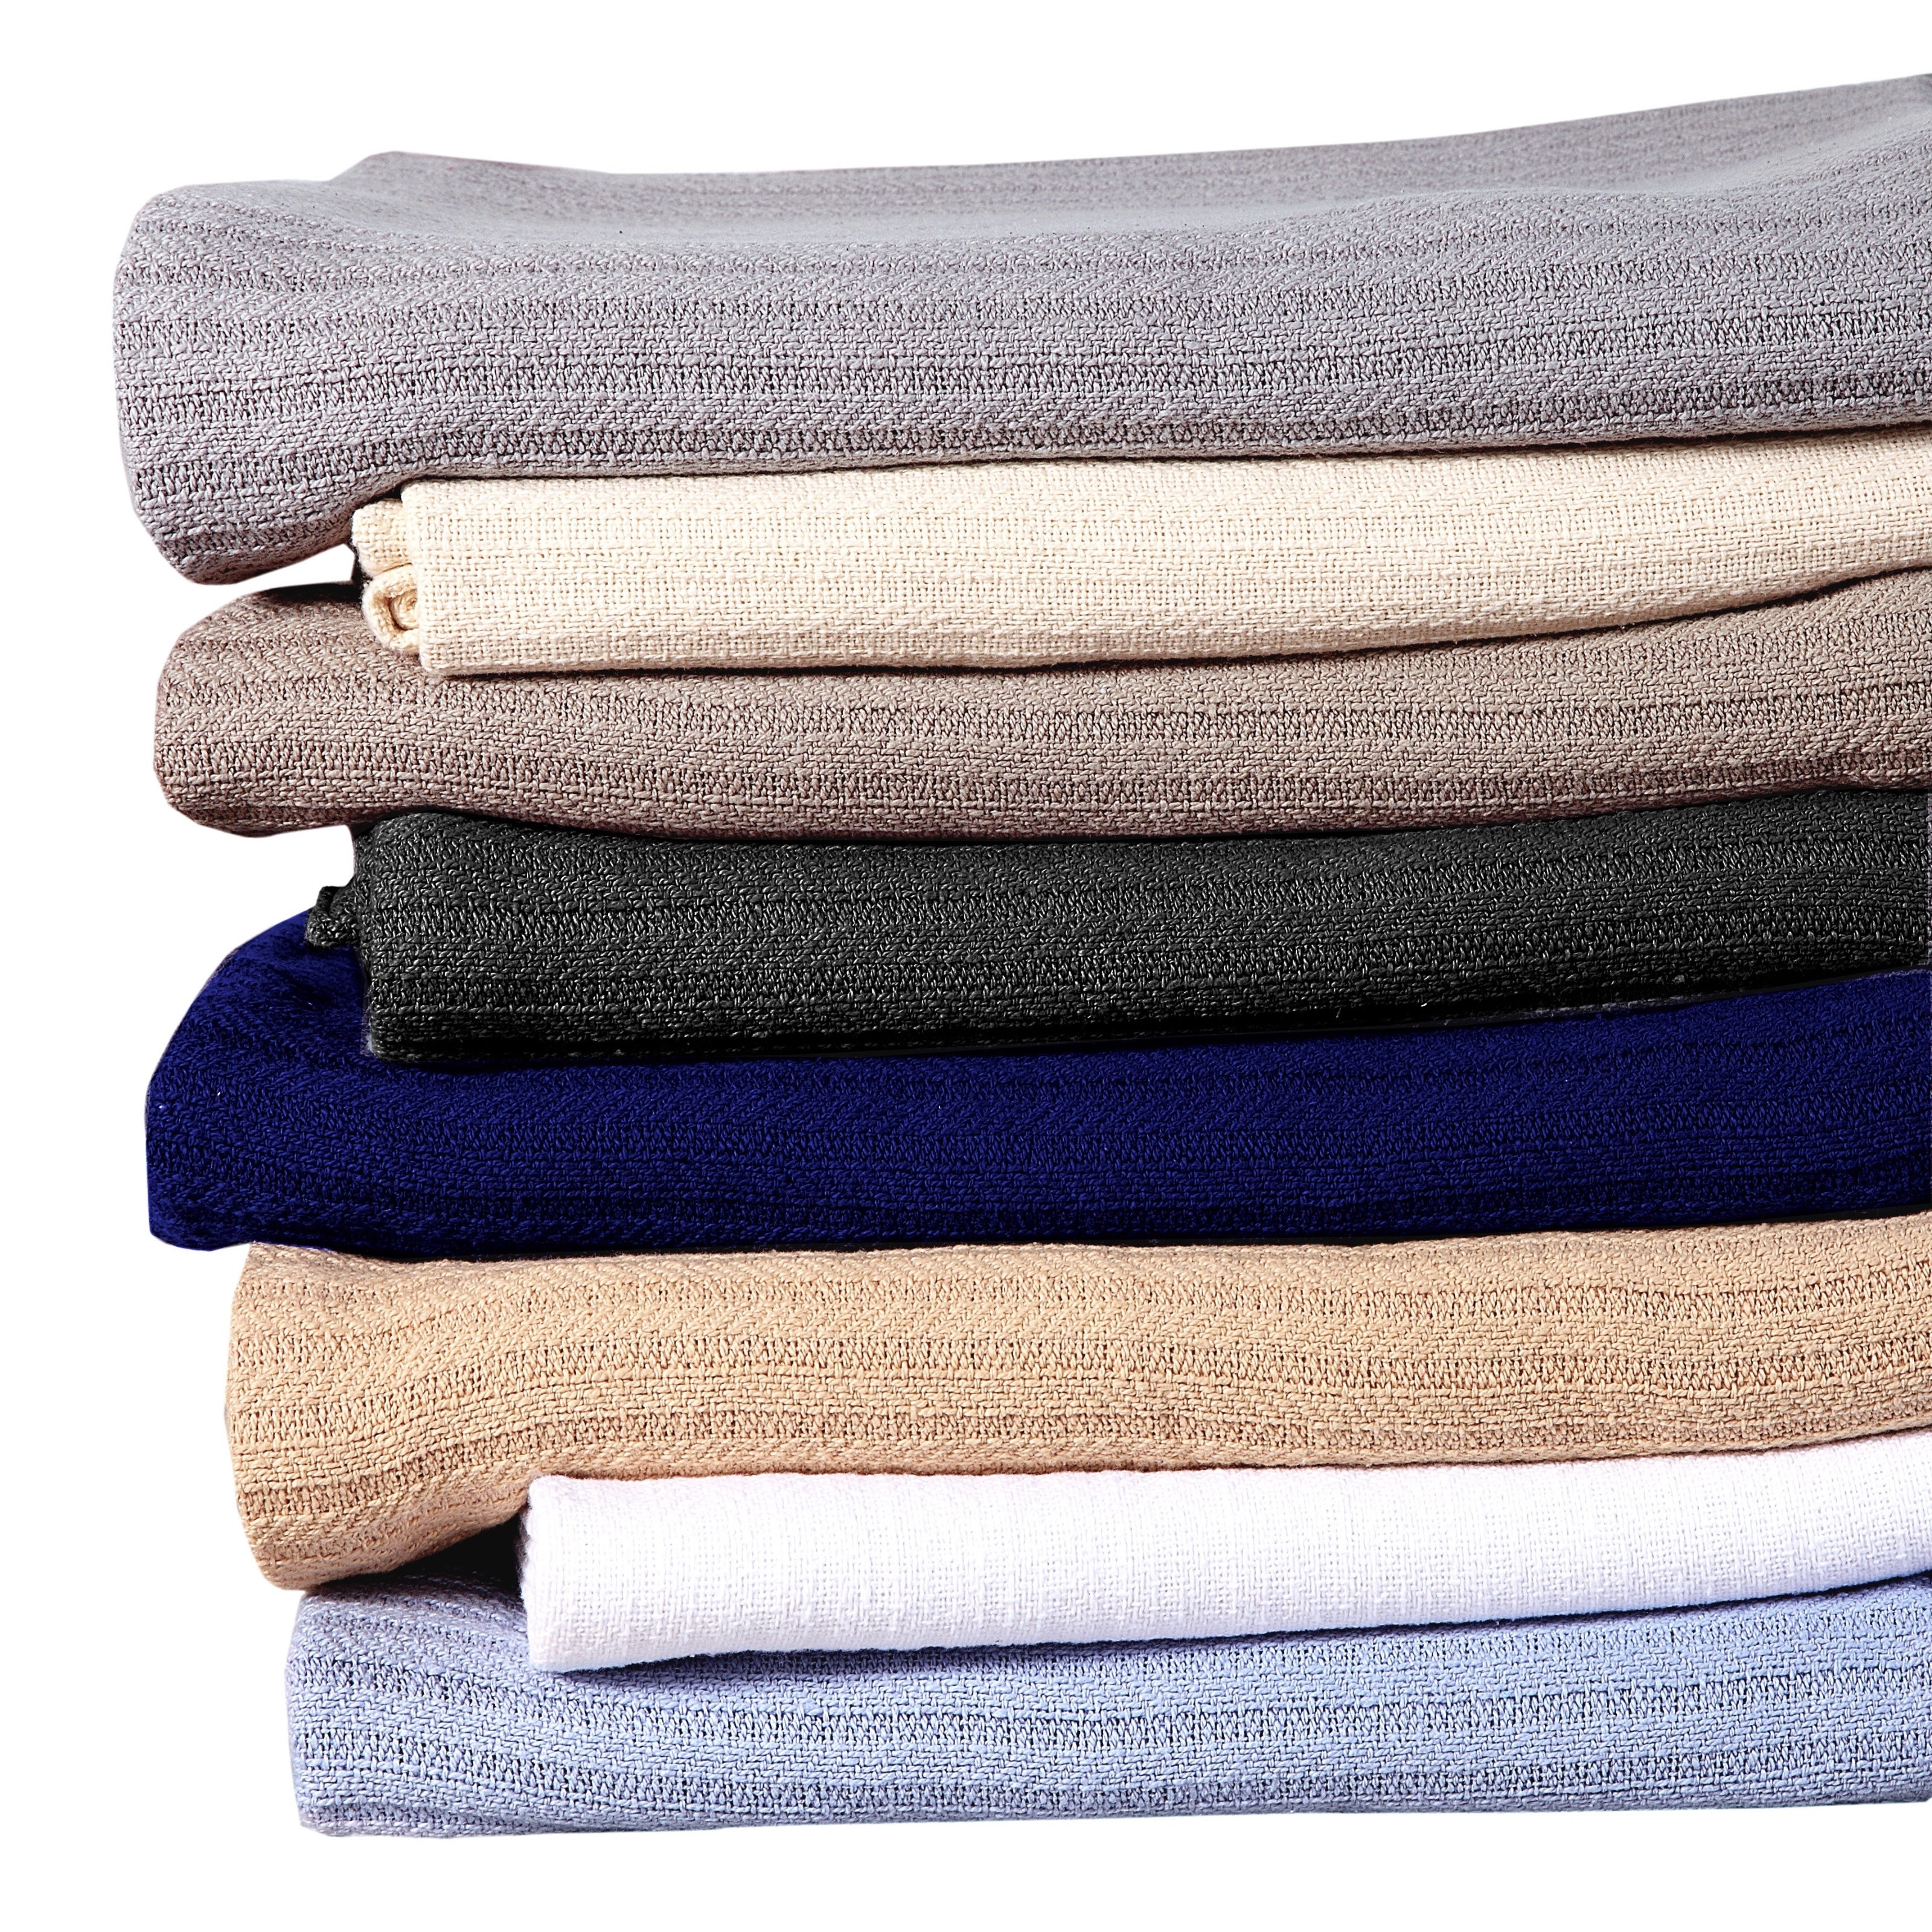 91851a4ff Affinity Home Collection Grant Woven Cotton Throw Blanket